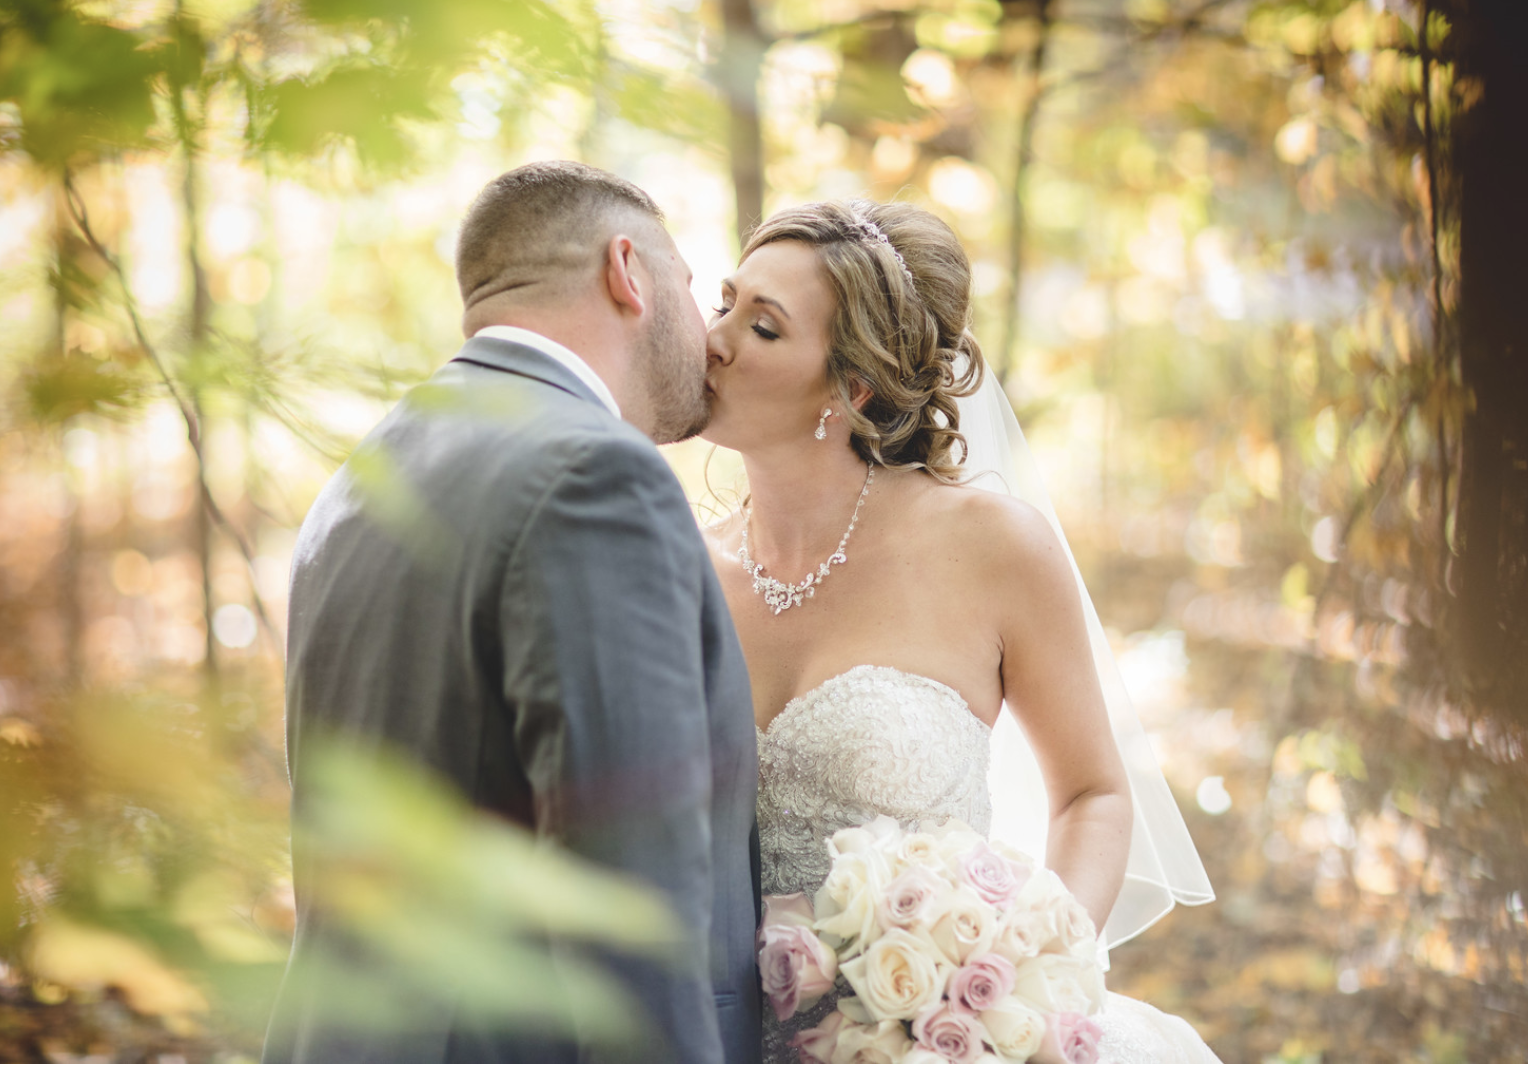 Ashley + Nathan at The Historic Courthouse (Oct 13, 2018)